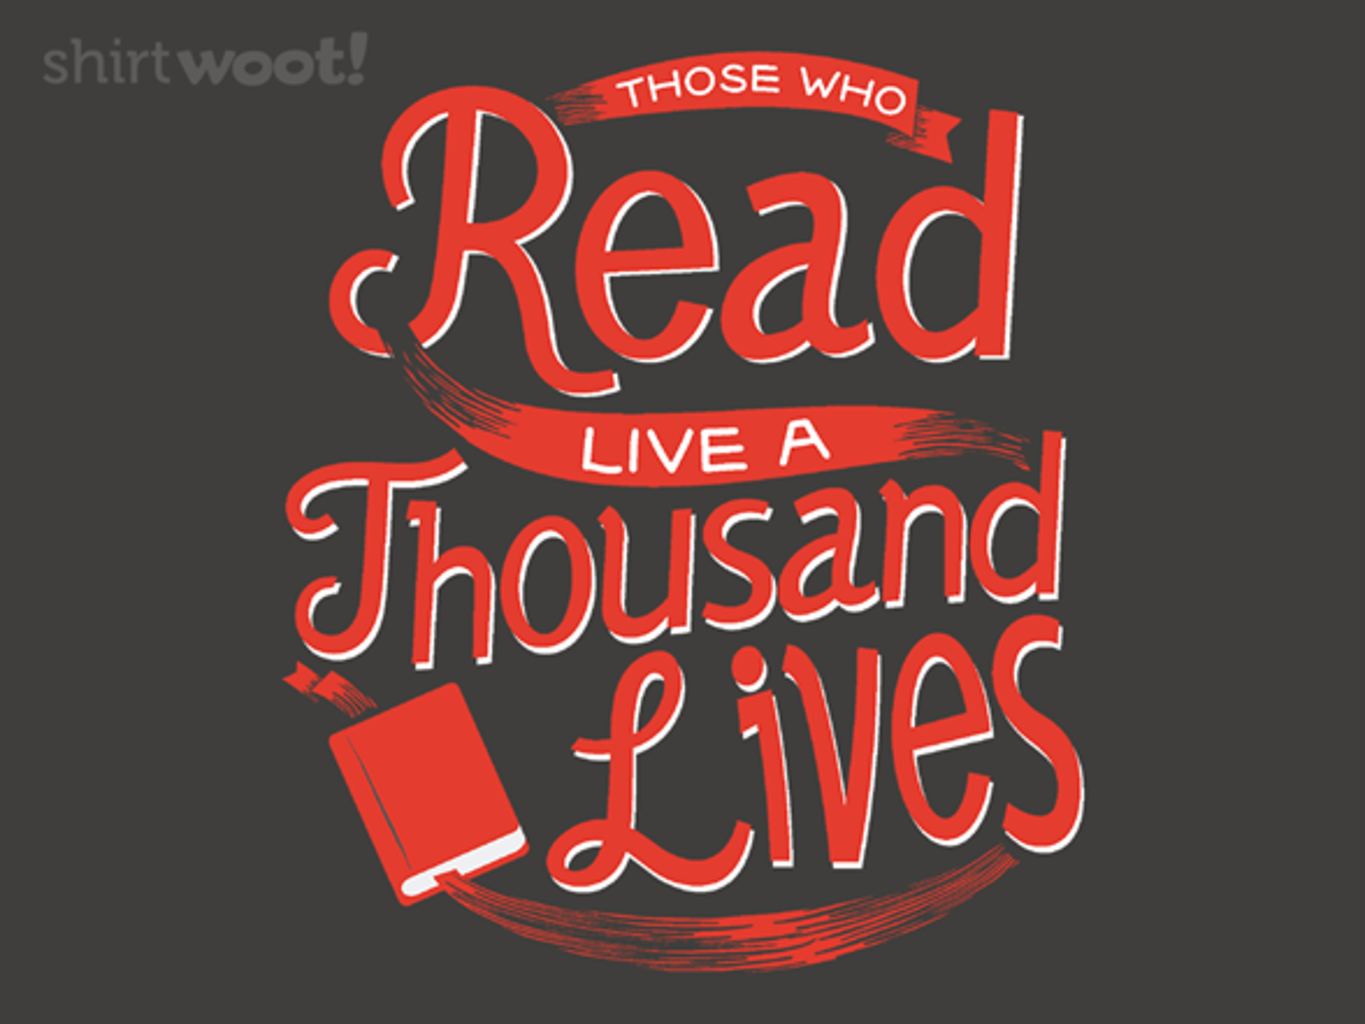 Woot!: Those Who Read